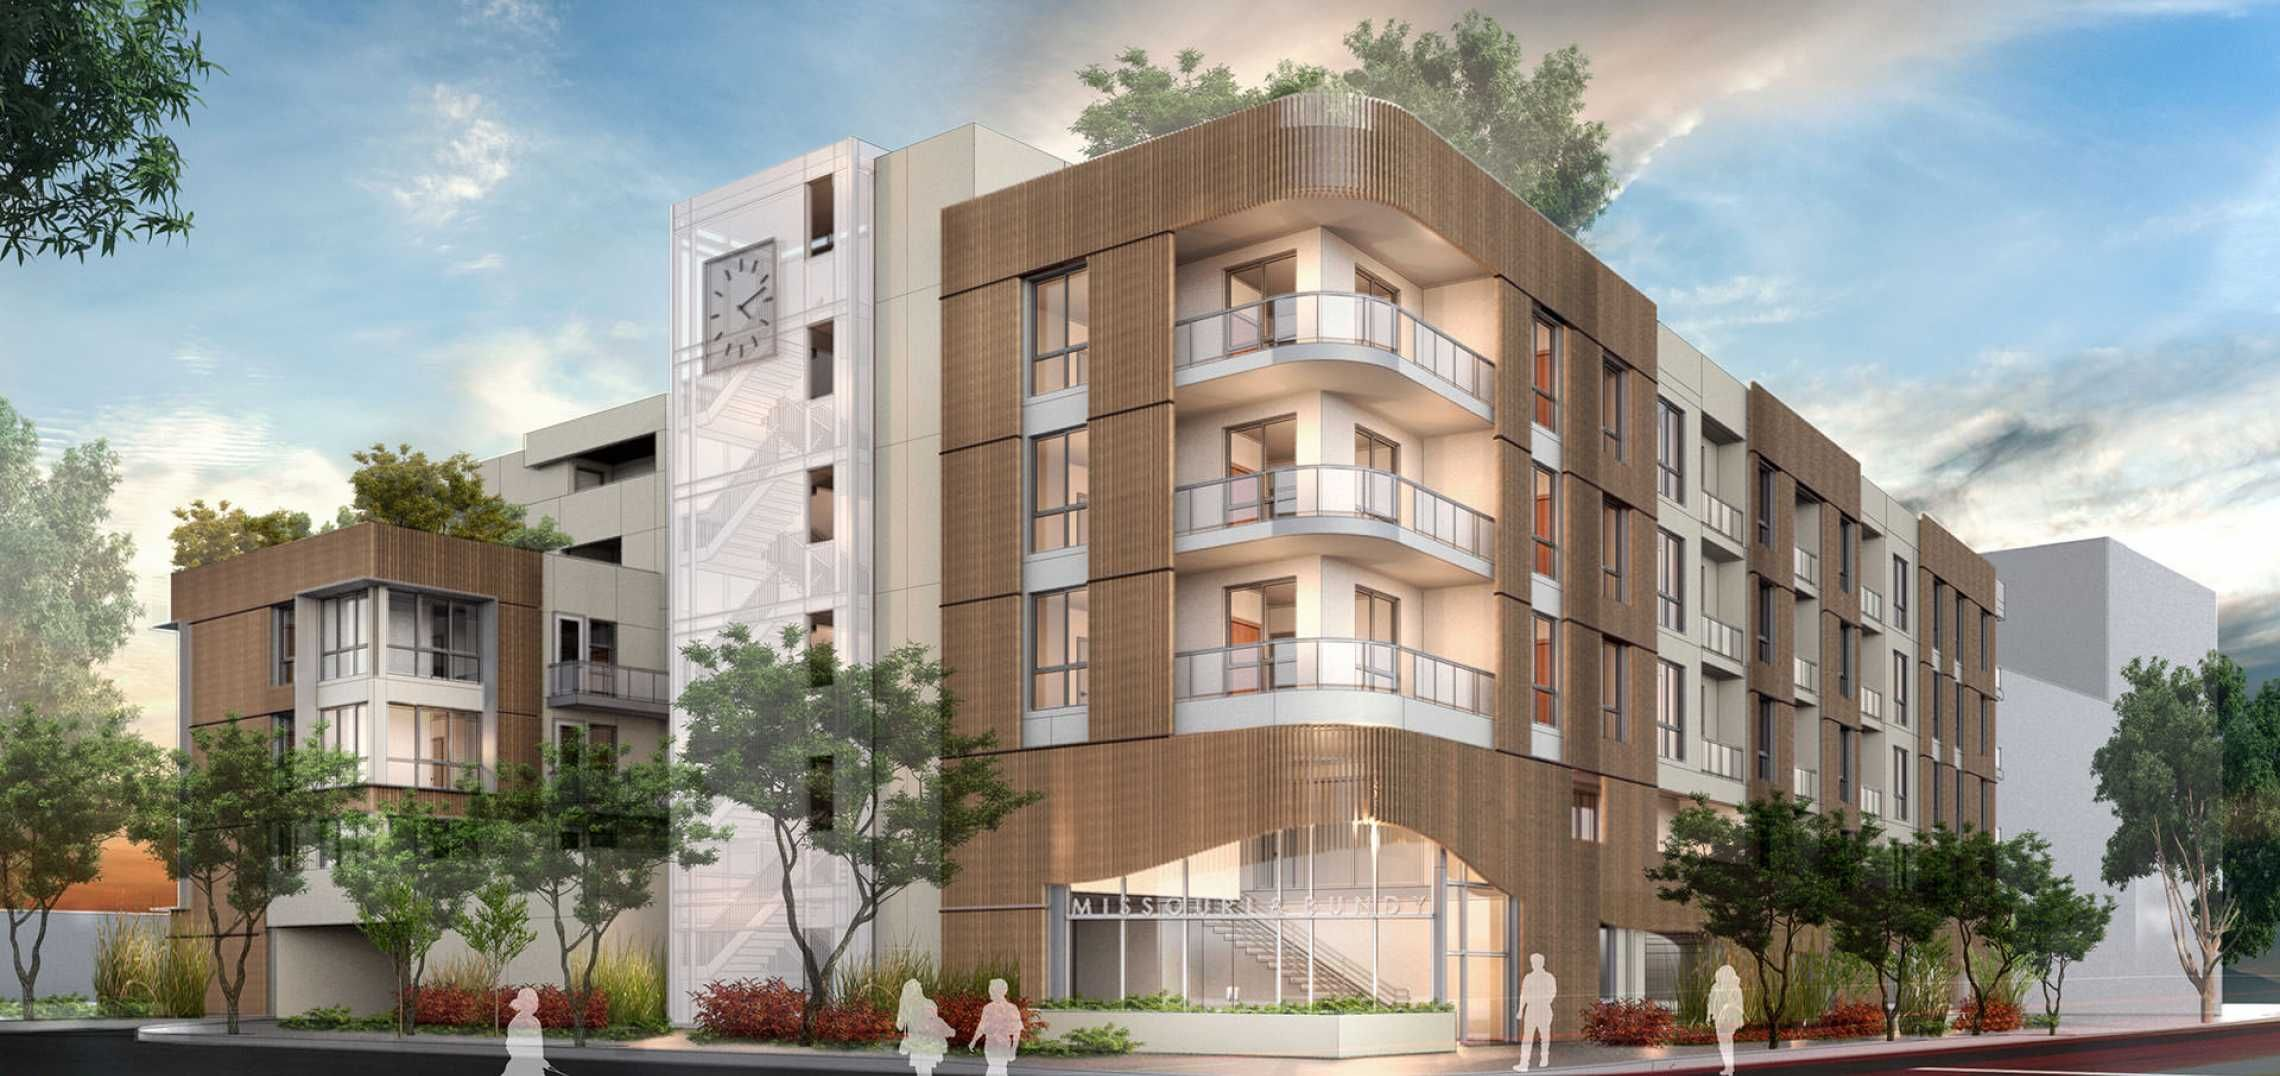 Affordable Housing Development Poised To Break Ground This Year At